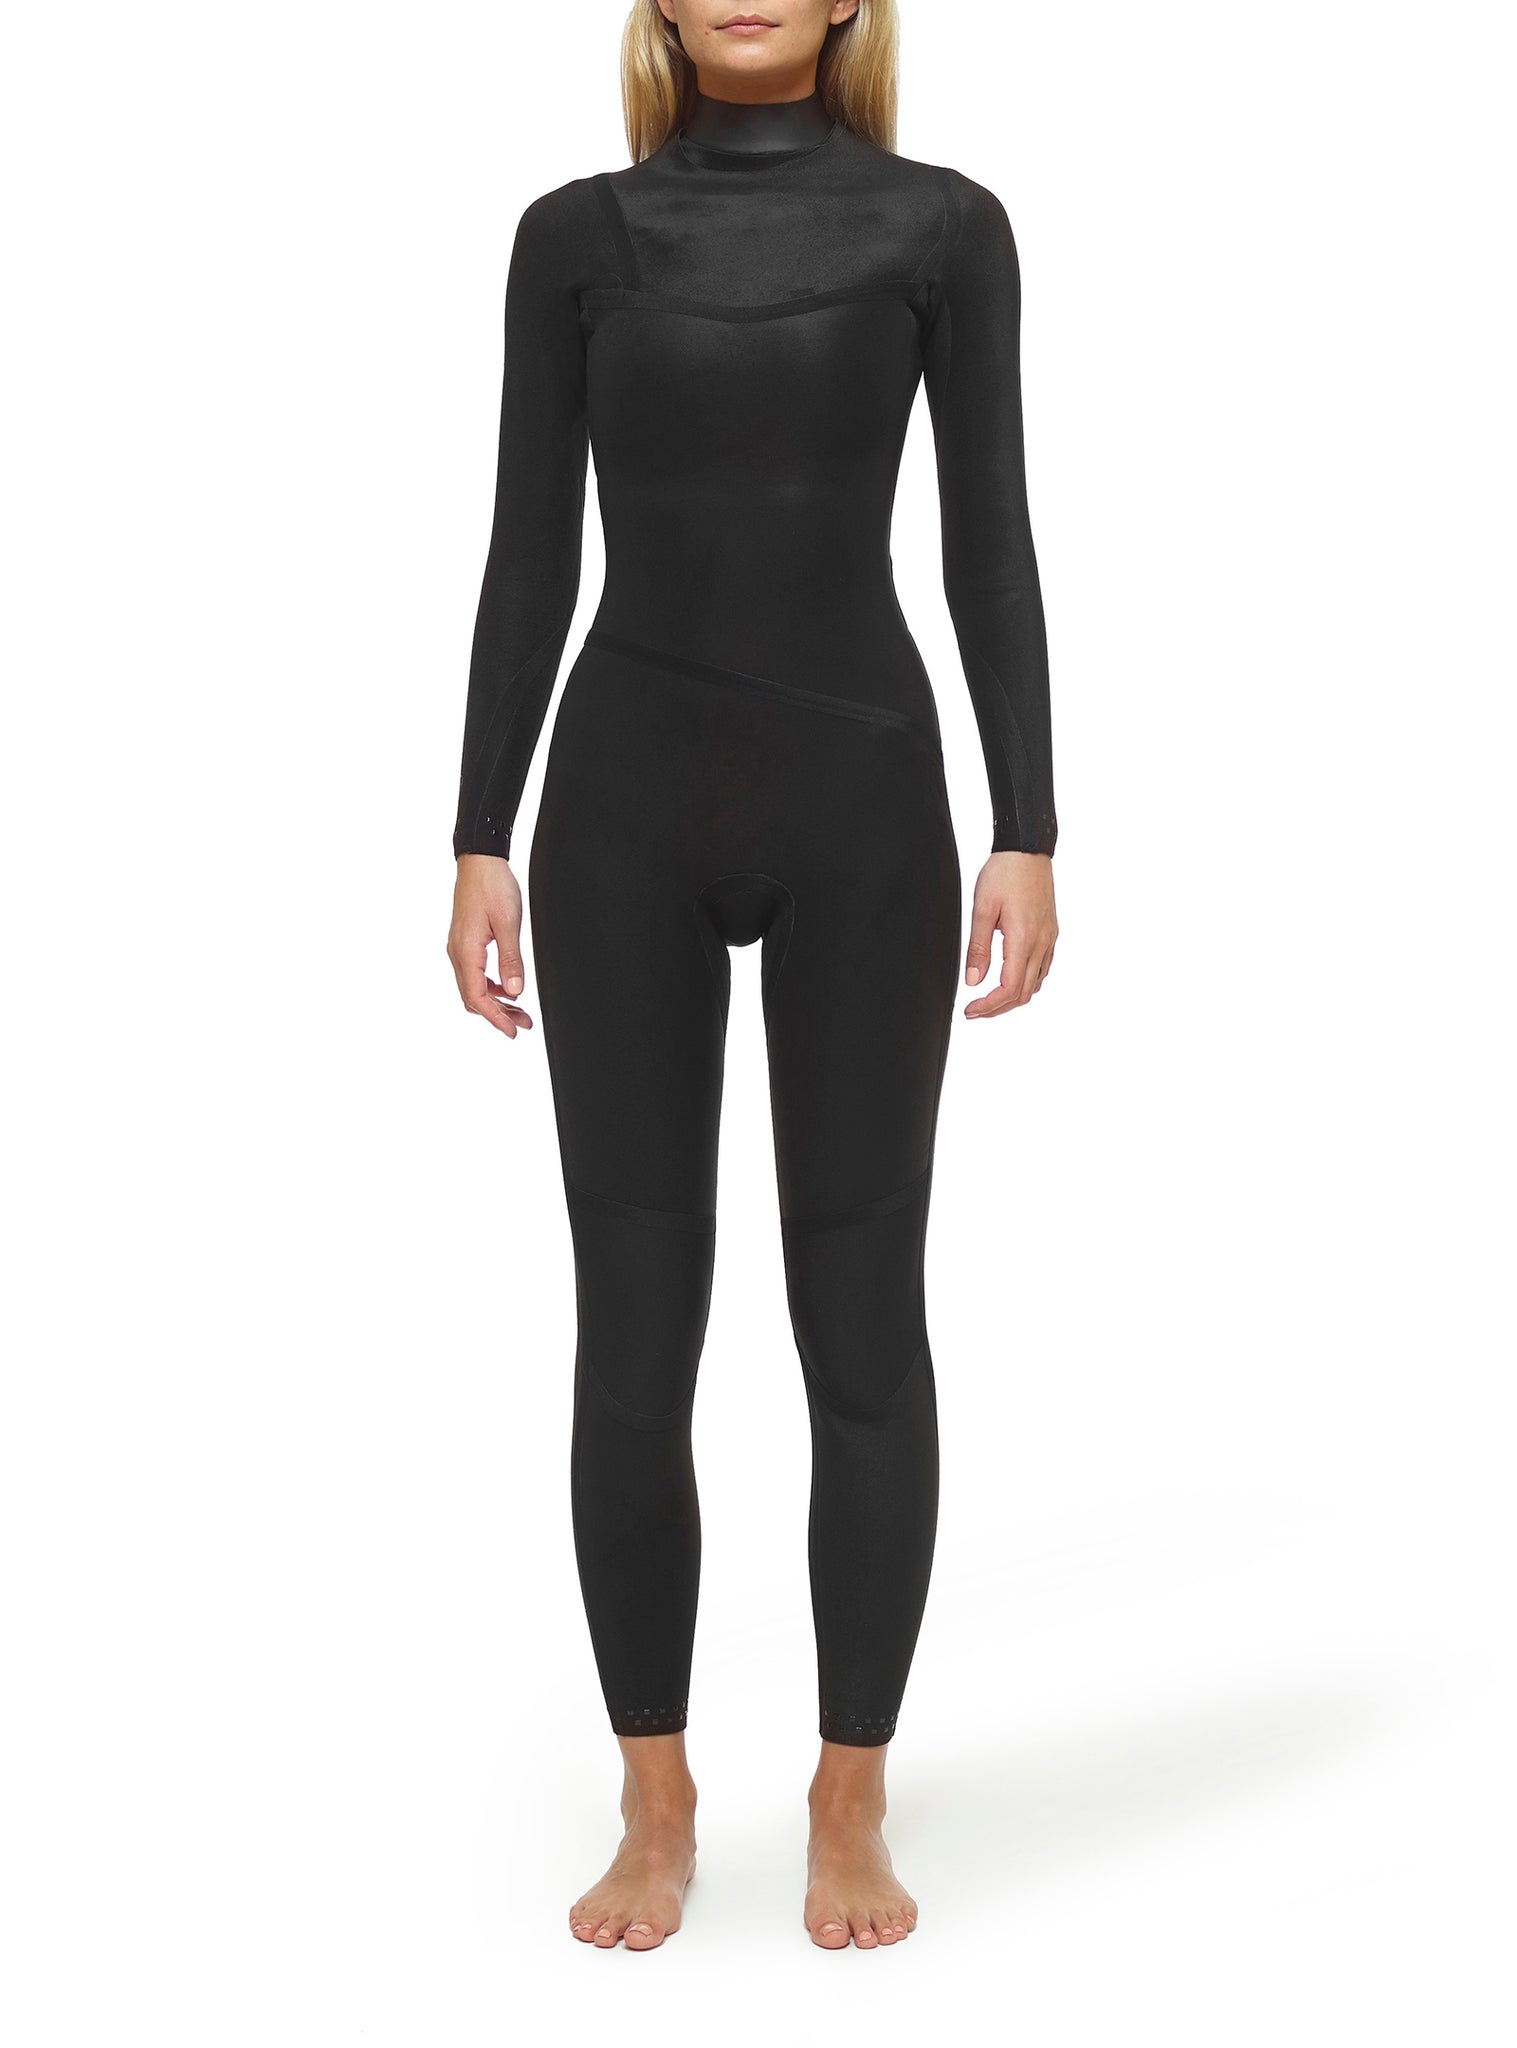 Wetsuit Woman Premium 3/2 Chest Zip Multicolour